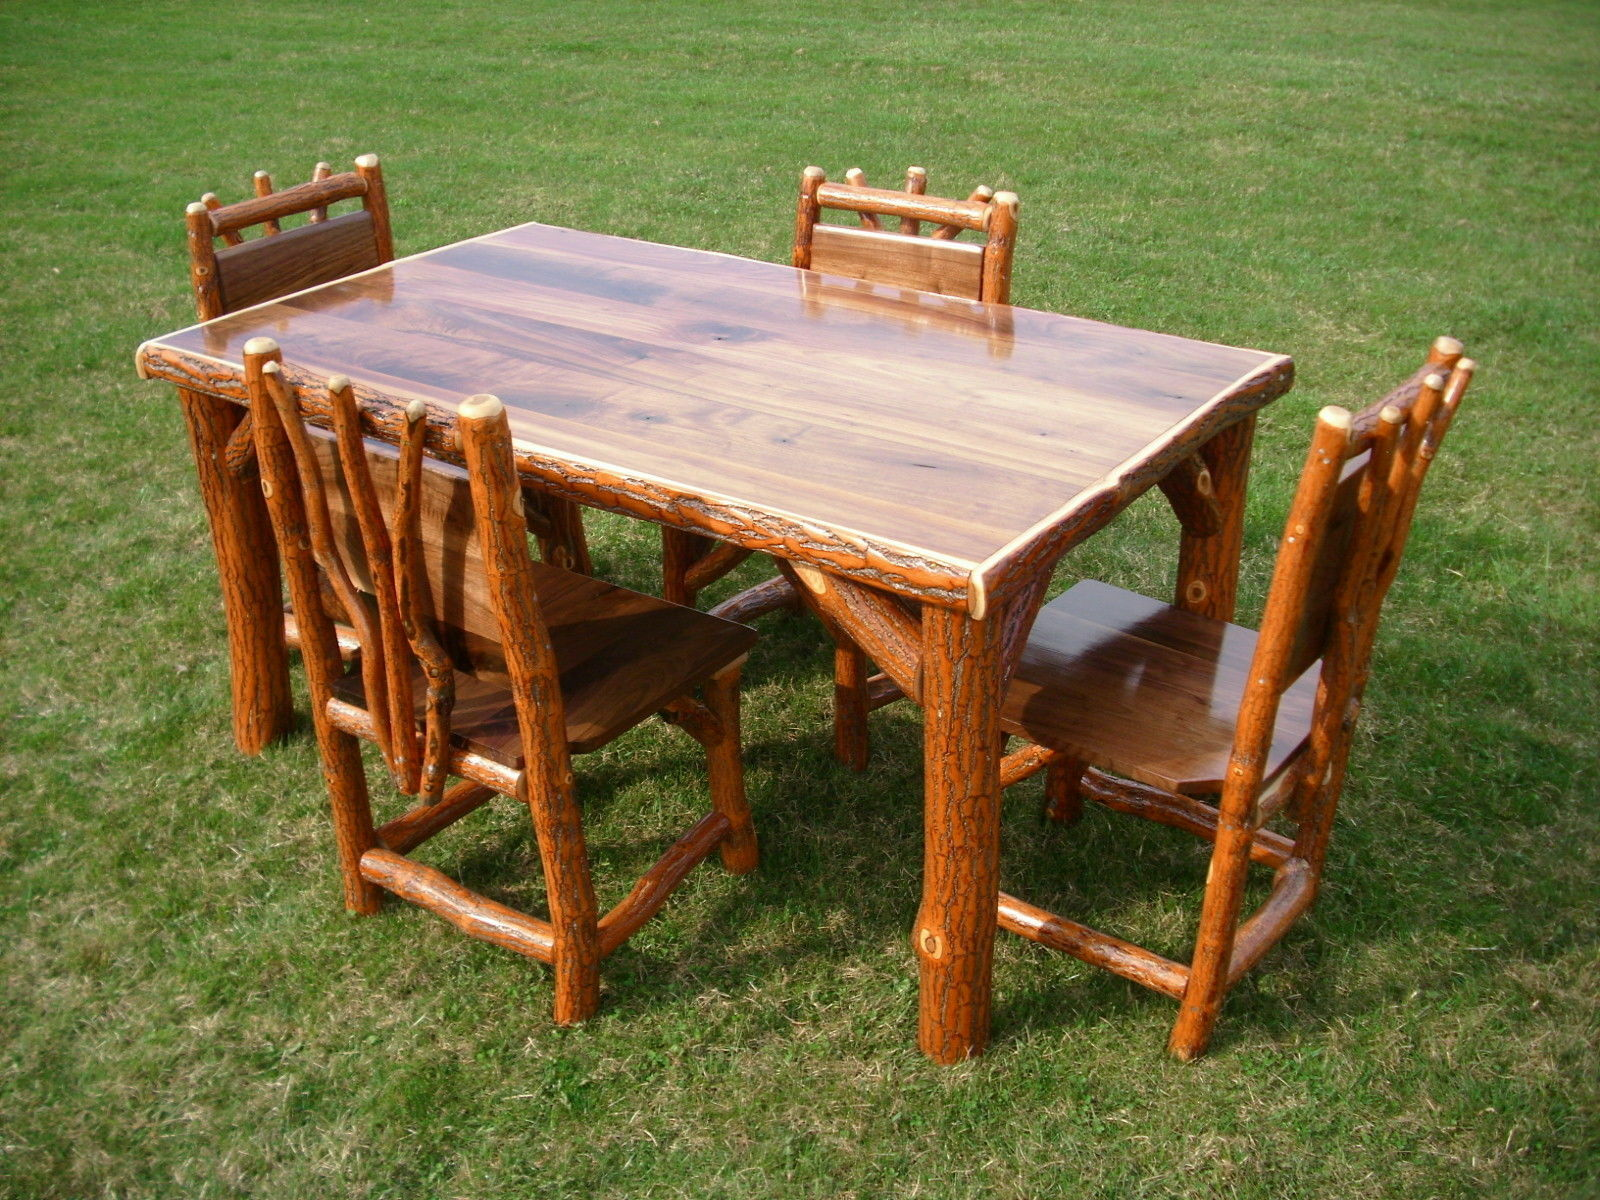 How to build a rustic kitchen table ebay - How to make rustic wood furniture ...